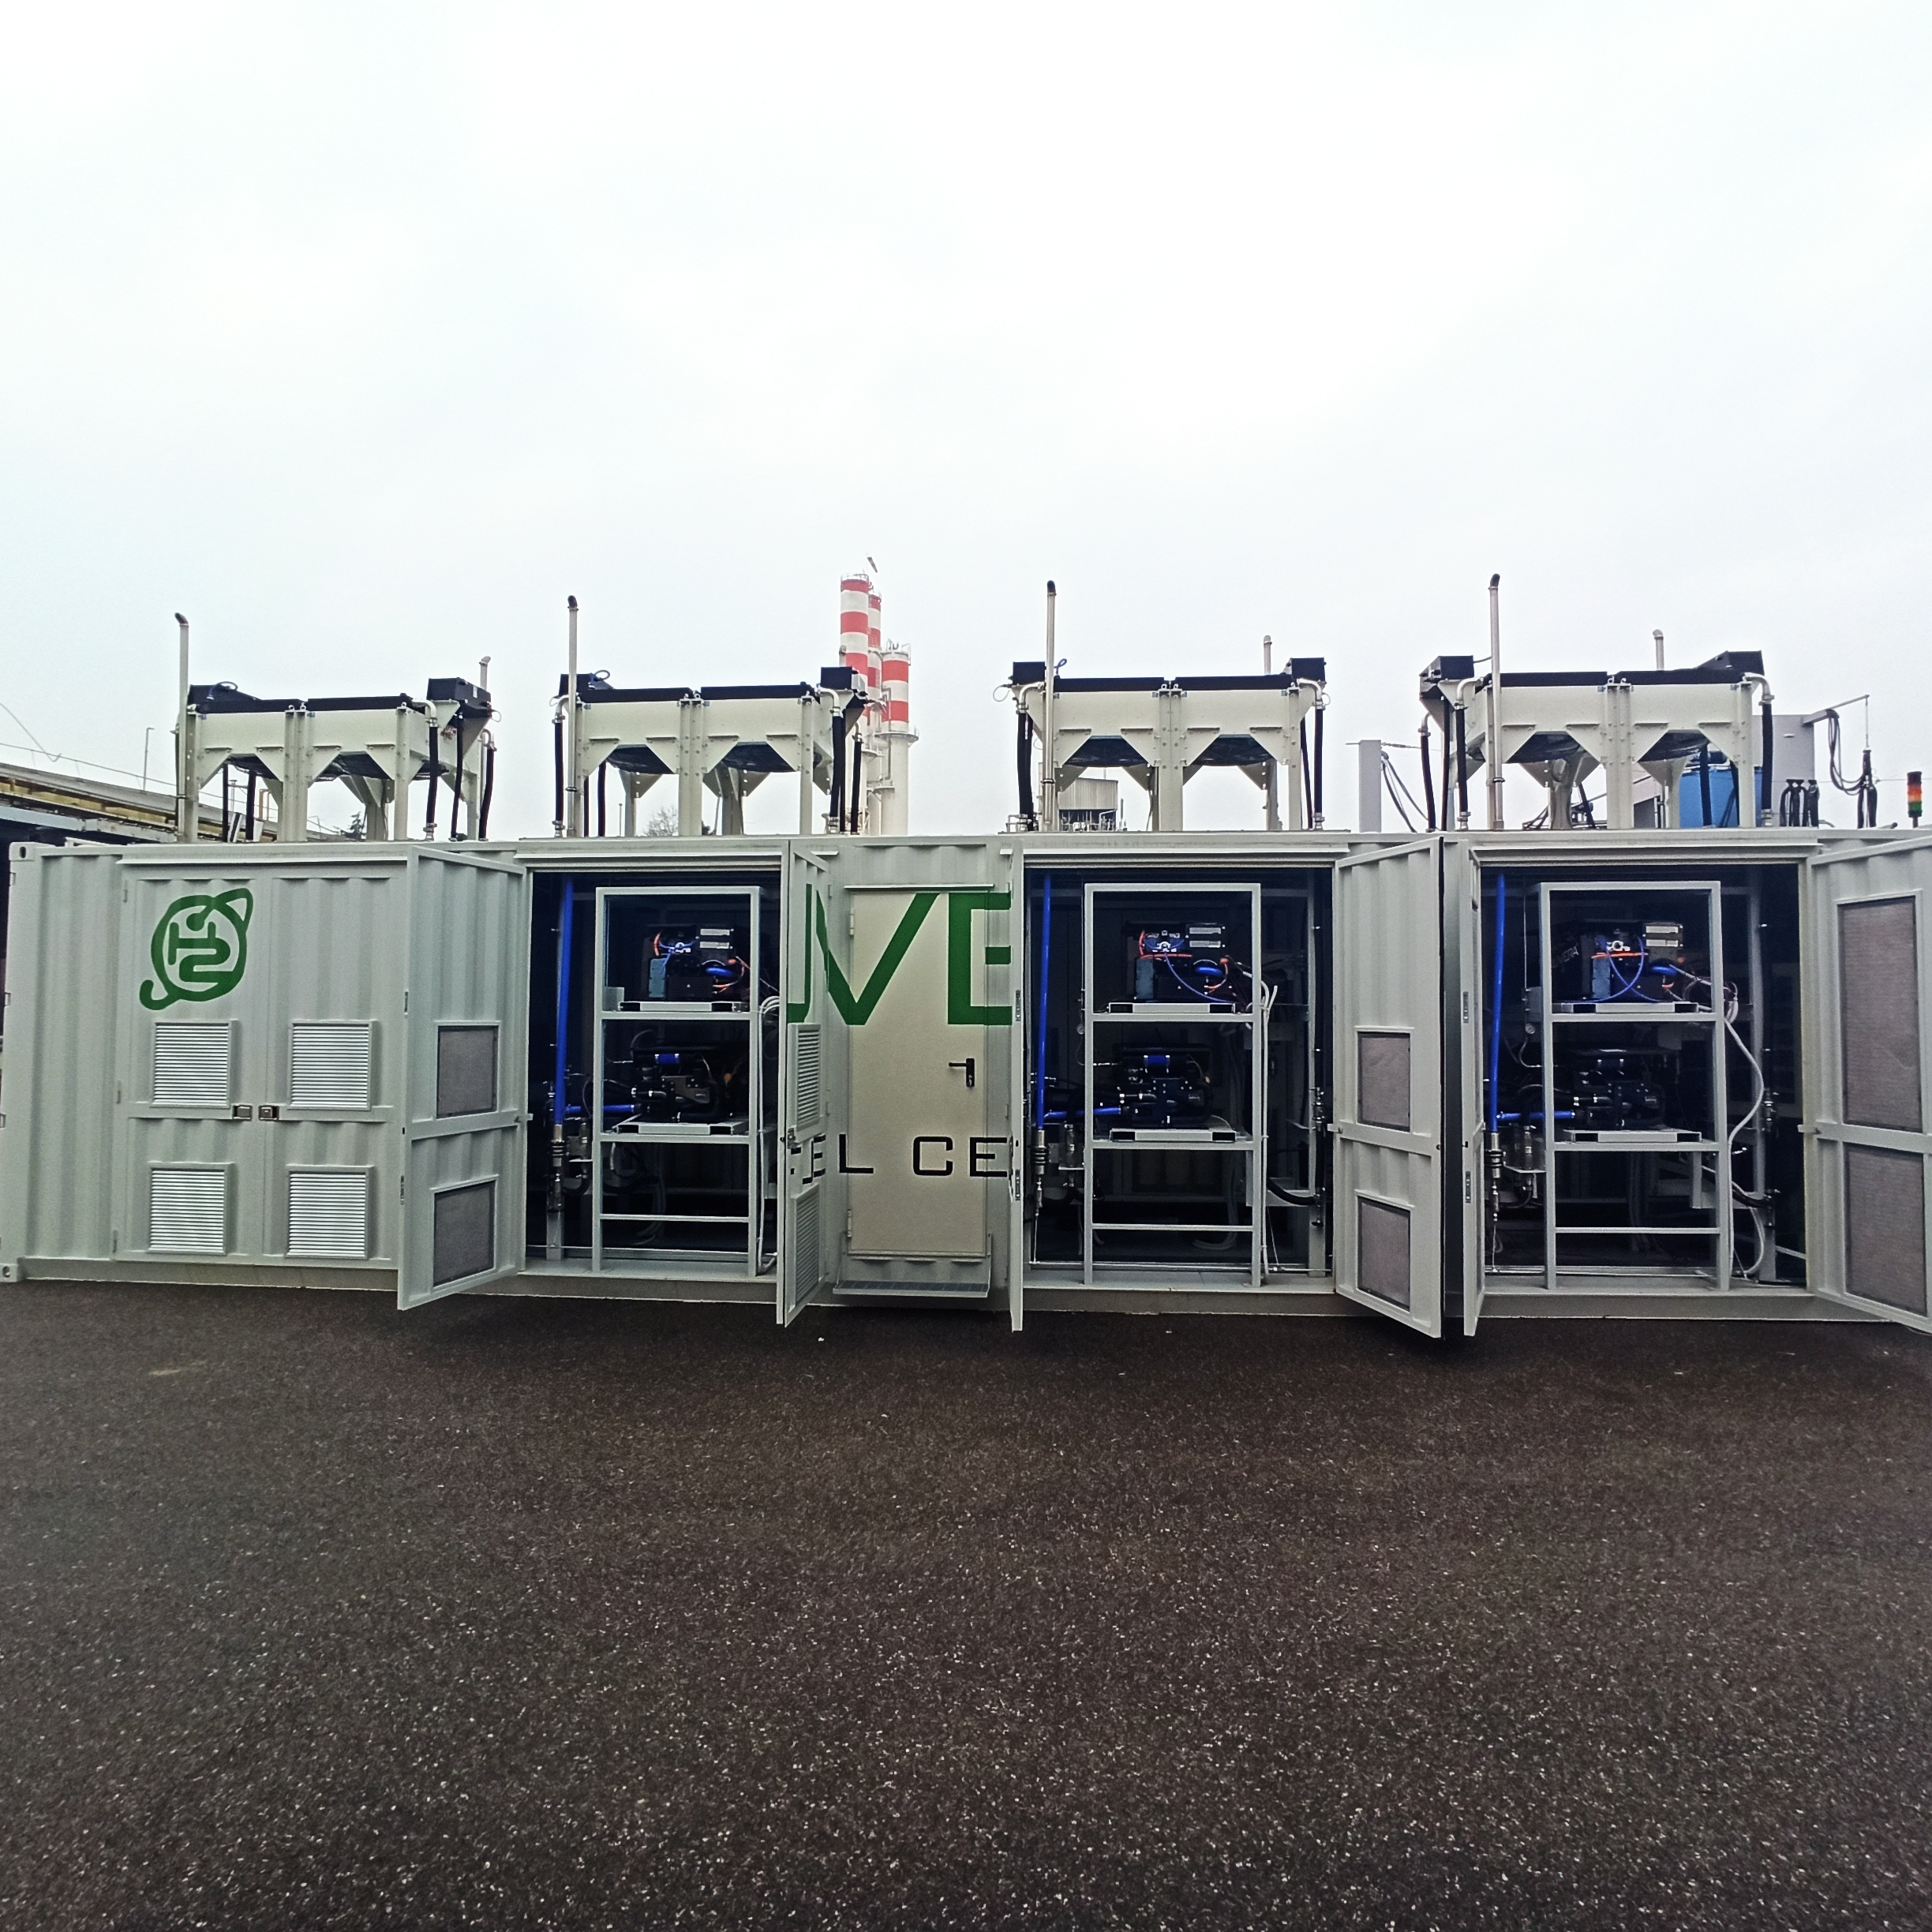 Nuvera Boosts Fuel Cell Engine Test Capabilities